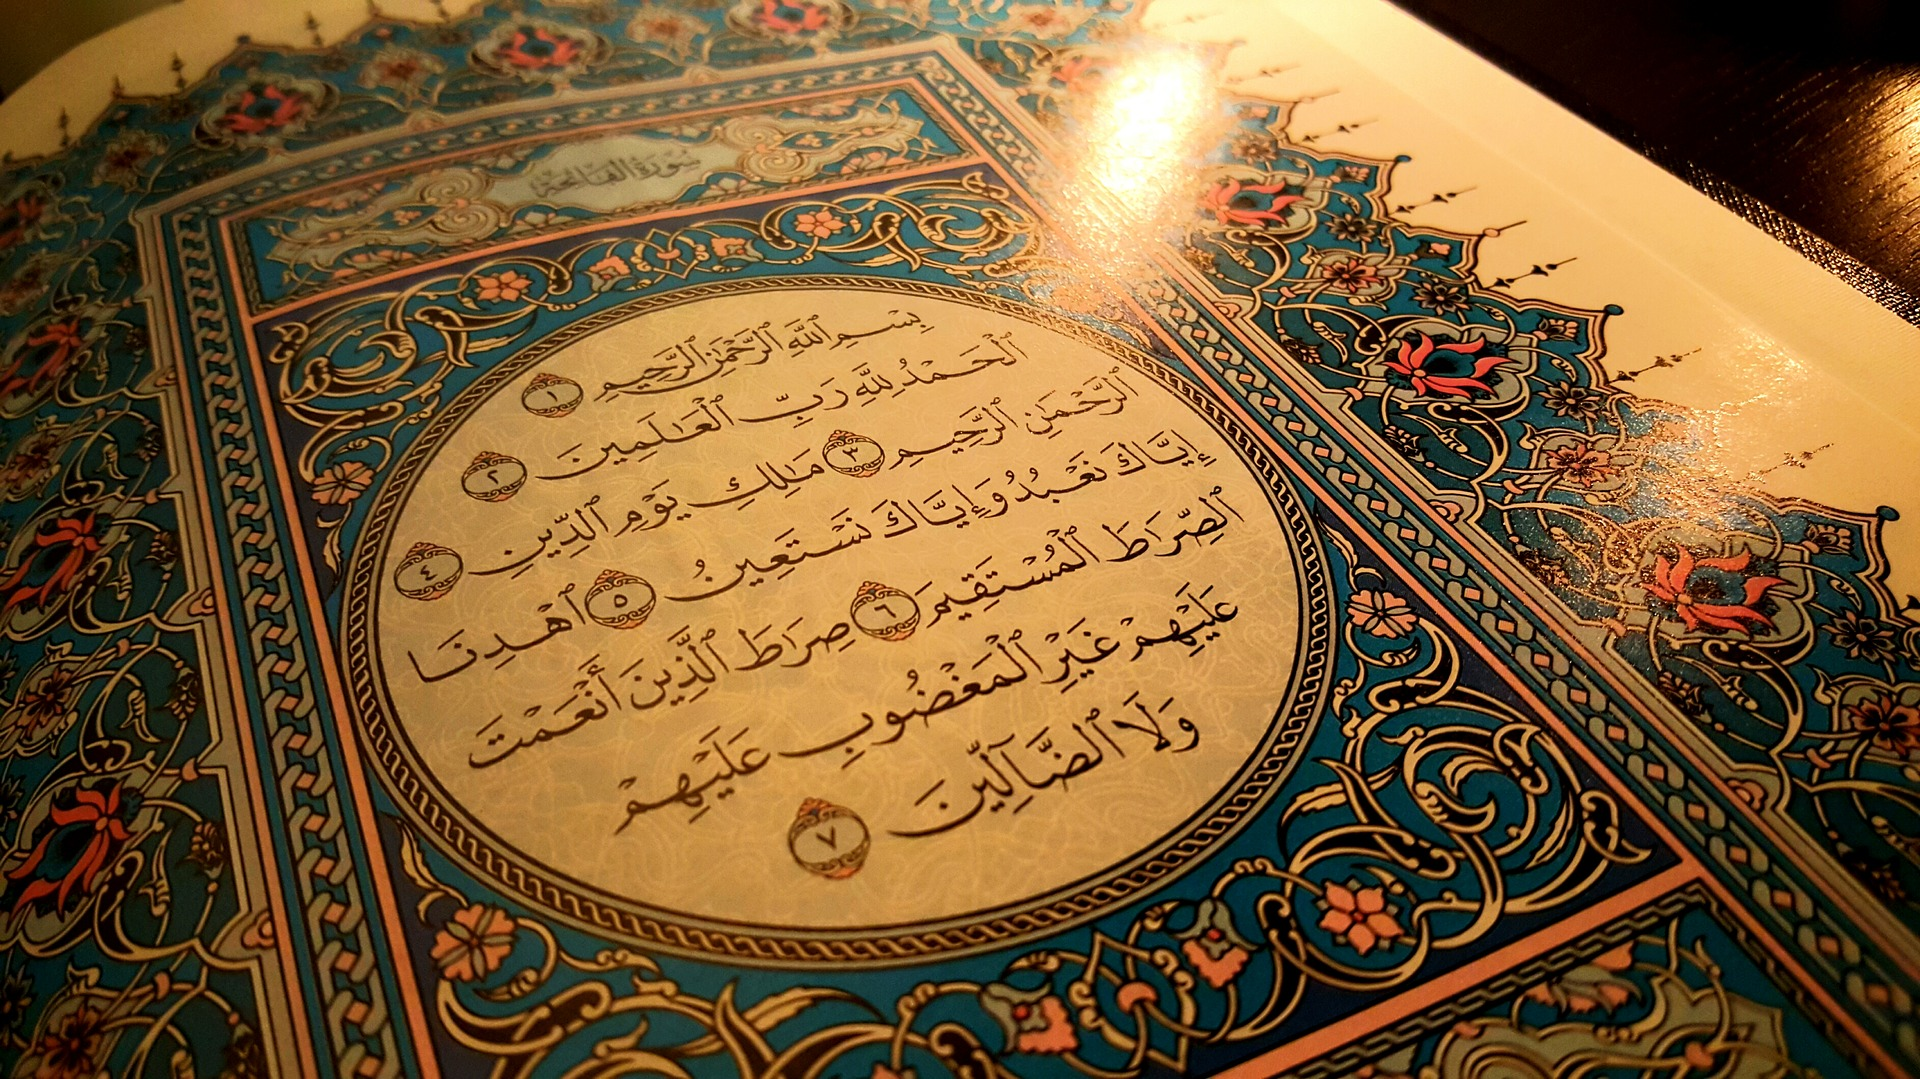 Photo of the first page of the Qur'an (Al-Faatihah)